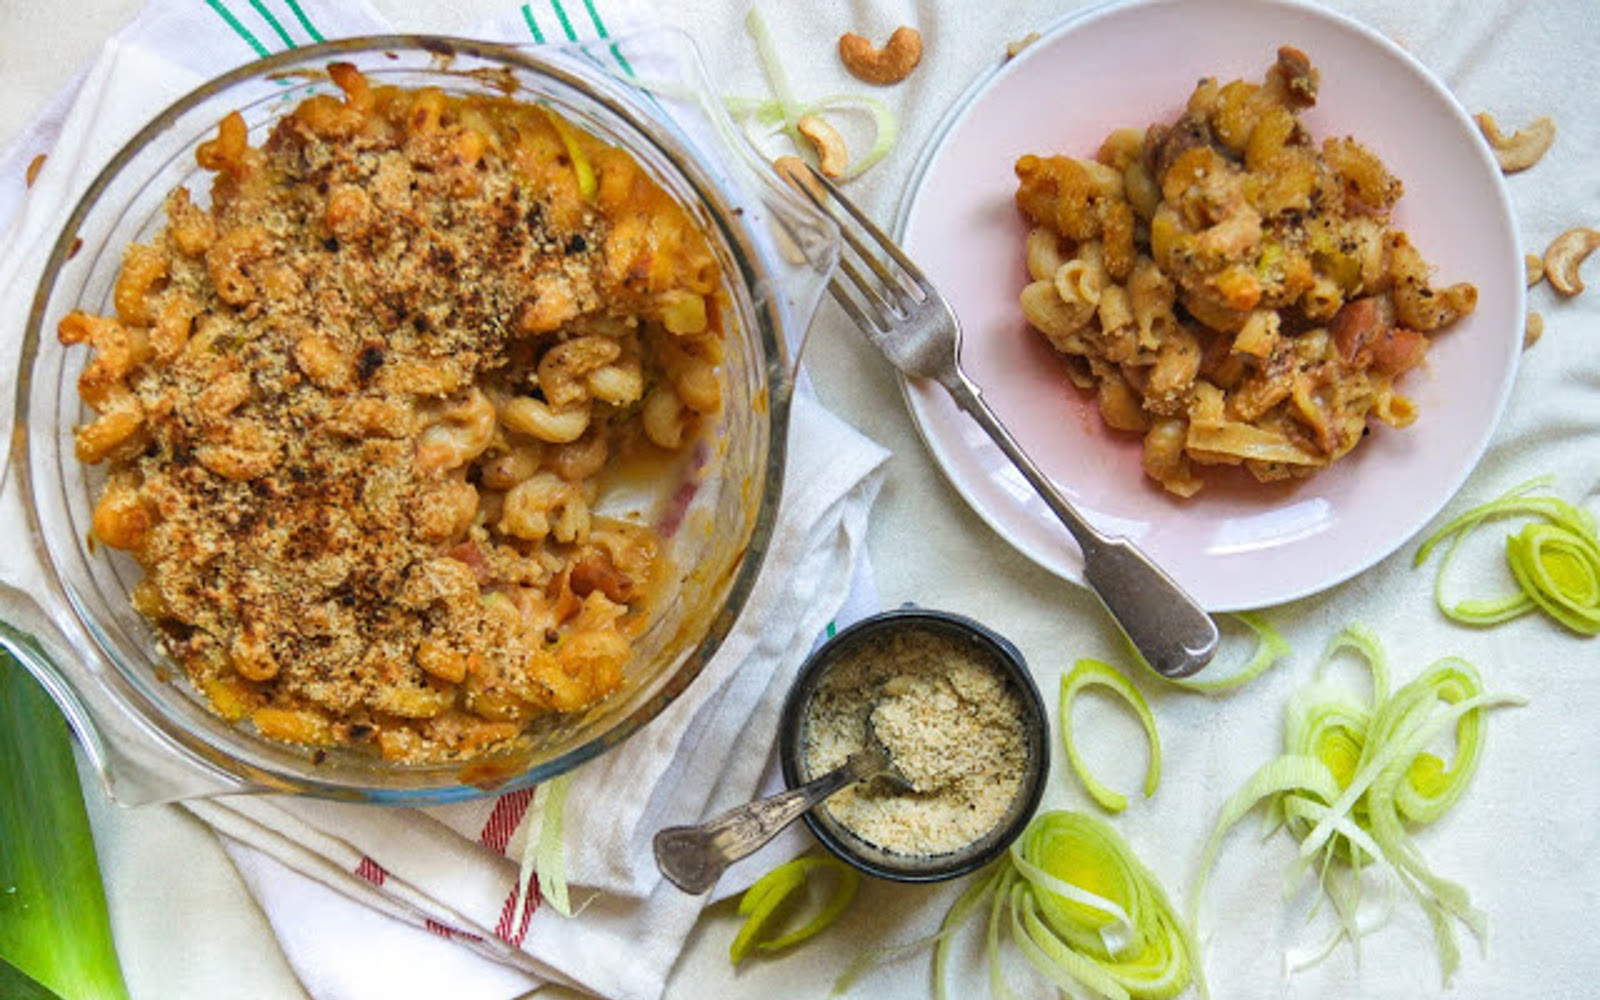 Leek and Smoked Carrot Mac and Cheese